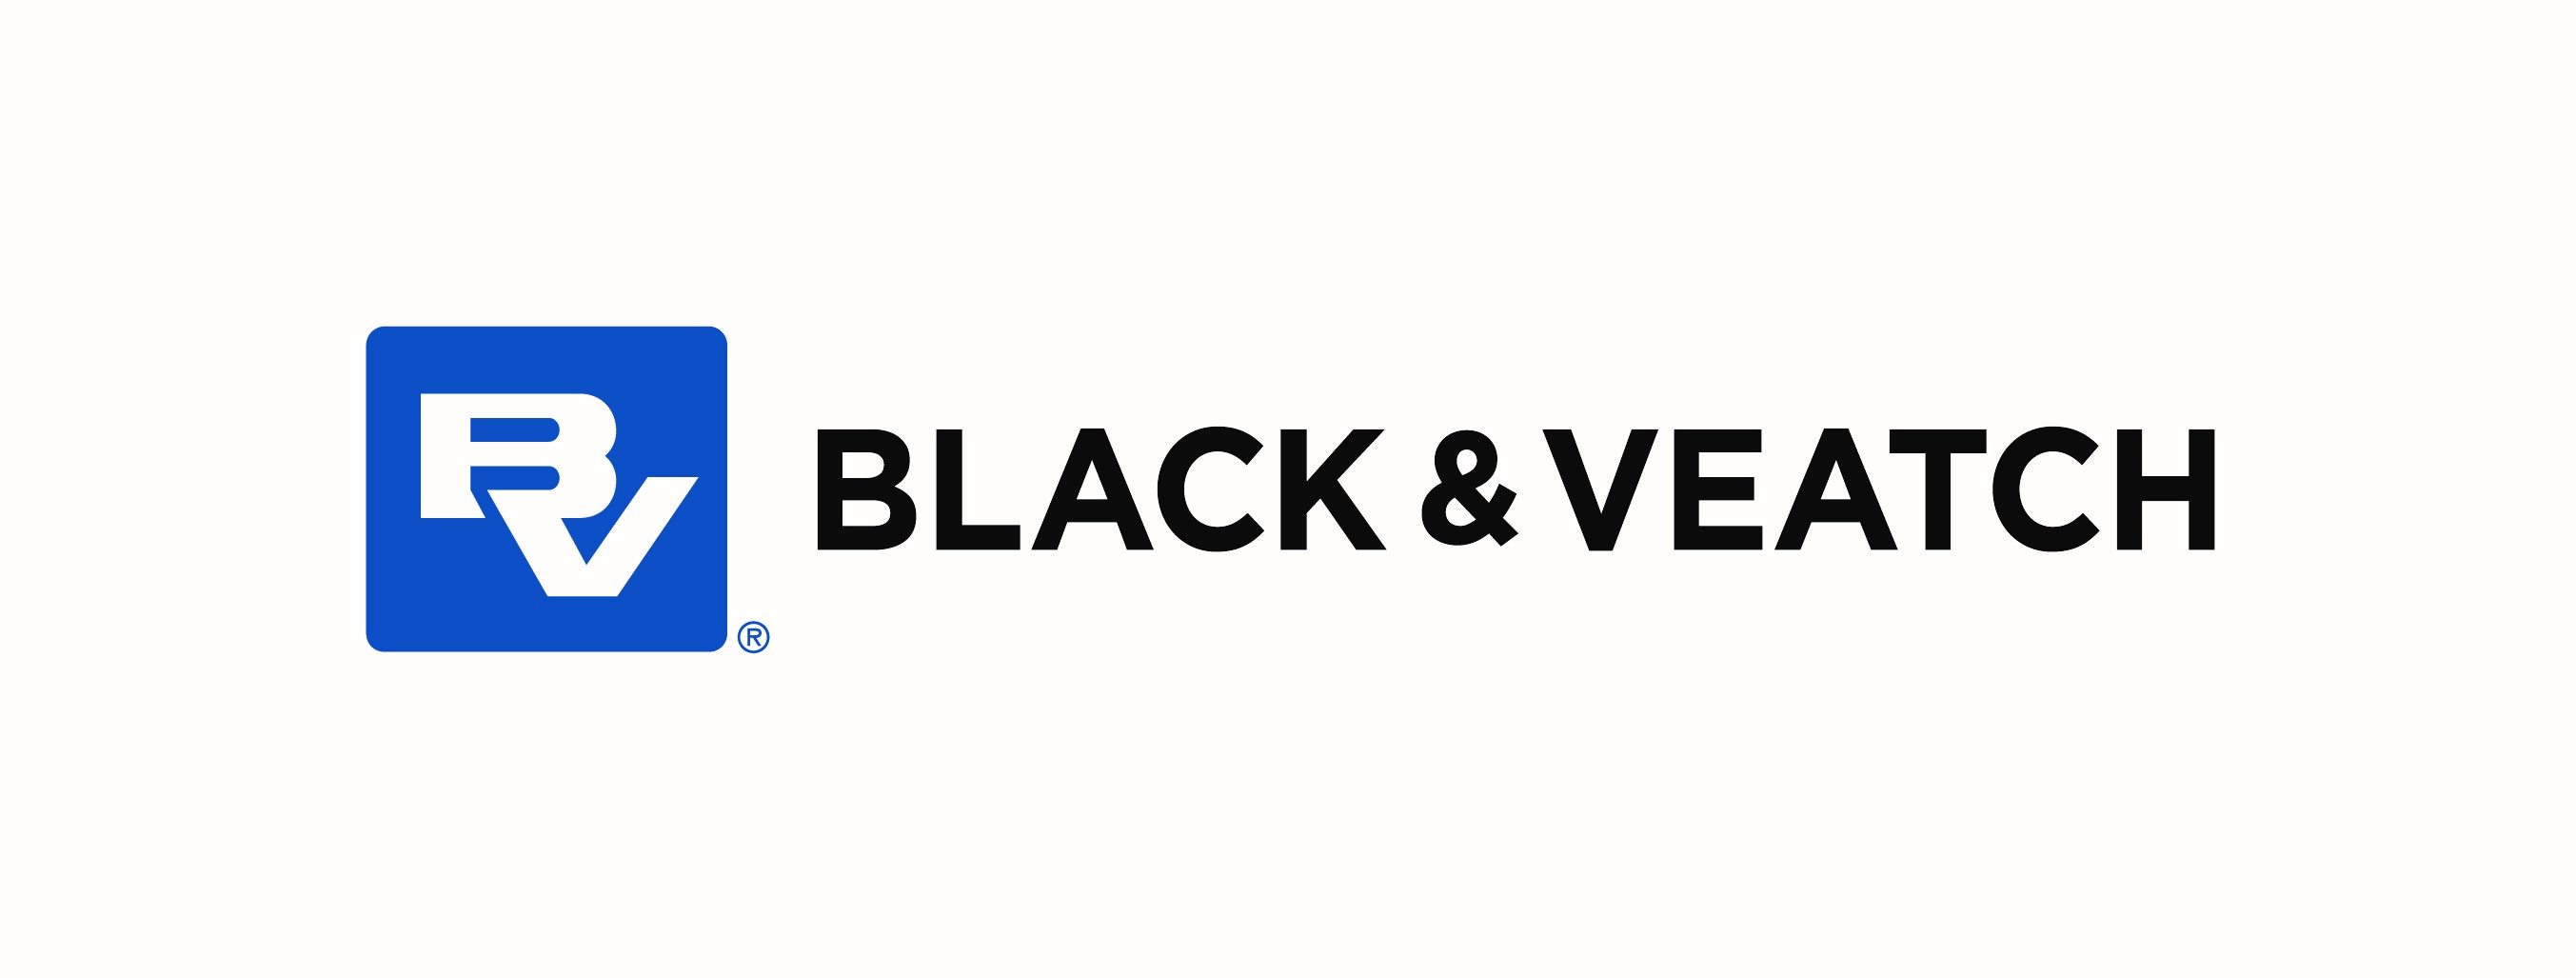 Black&Veatch Logo.jpg